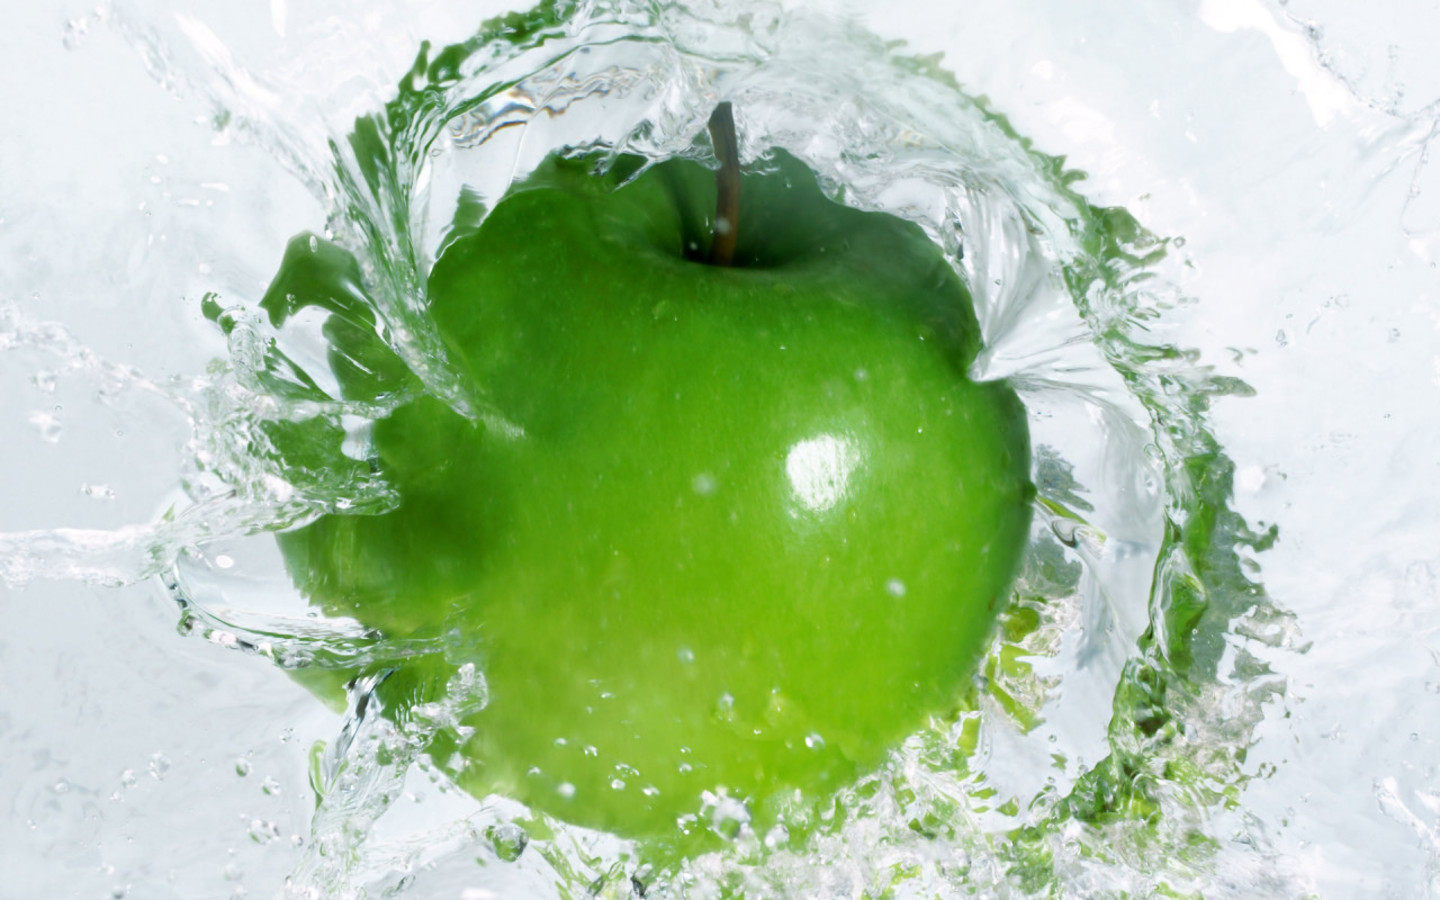 http://2.bp.blogspot.com/_KLJU3hHDGVM/TAyBZfQiHUI/AAAAAAAACPw/CP6e-6JywqE/s1600/Green_Apple_wallpapers.jpg